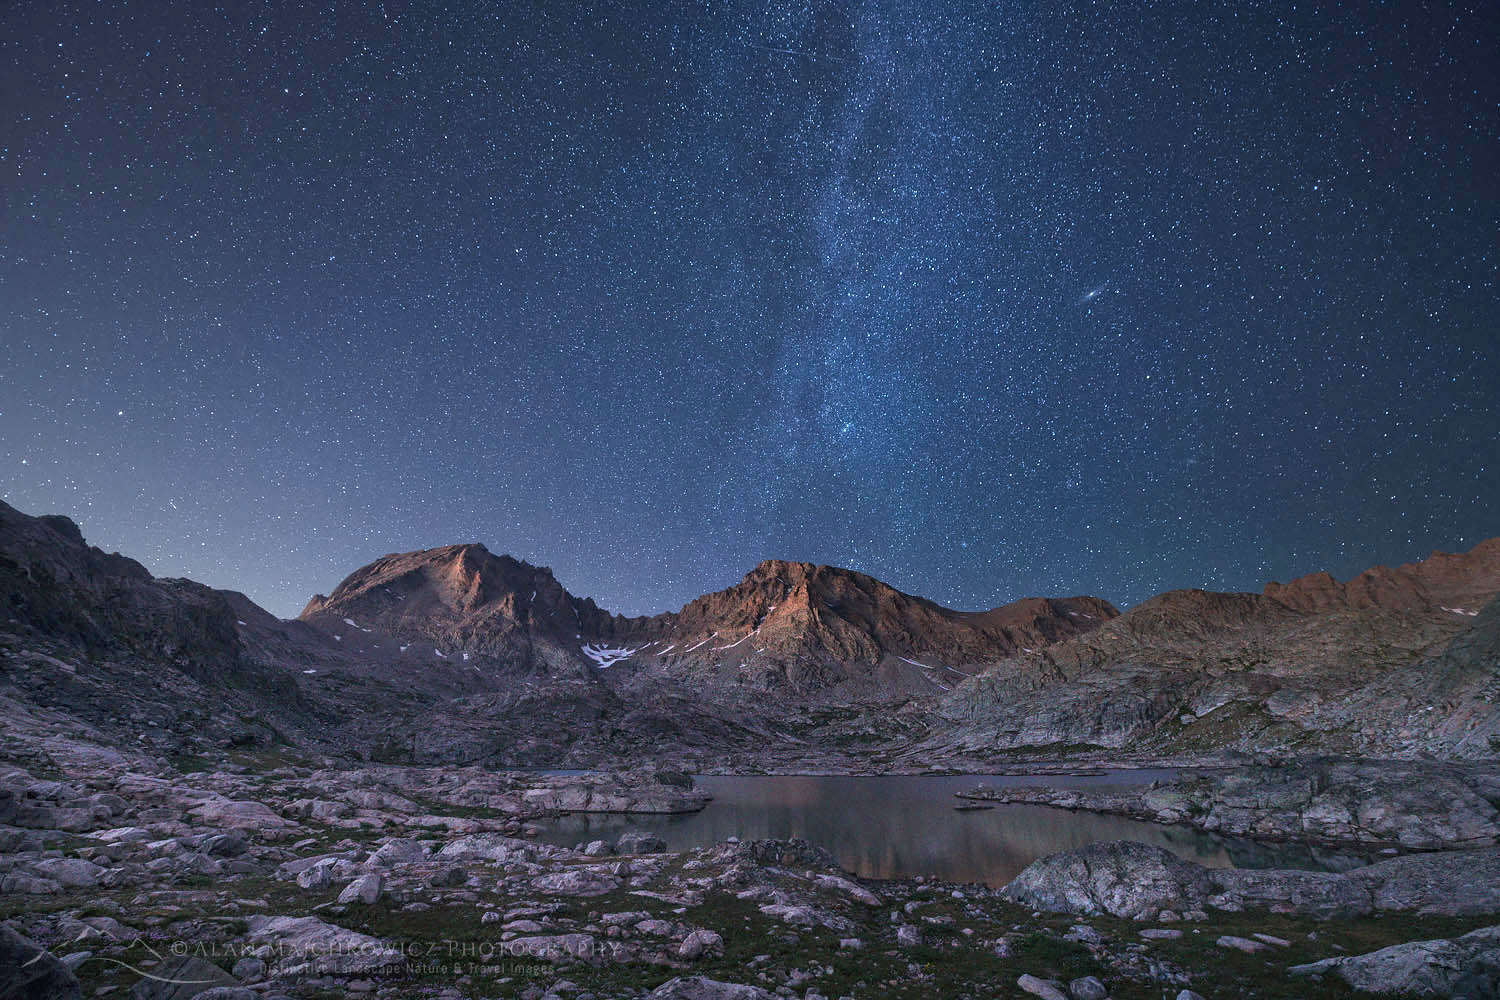 Milky Way over Indian Basin, Fremont and Jackson Peaks are in the distance, Bridger Wilderness, Wind River Range Wyoming